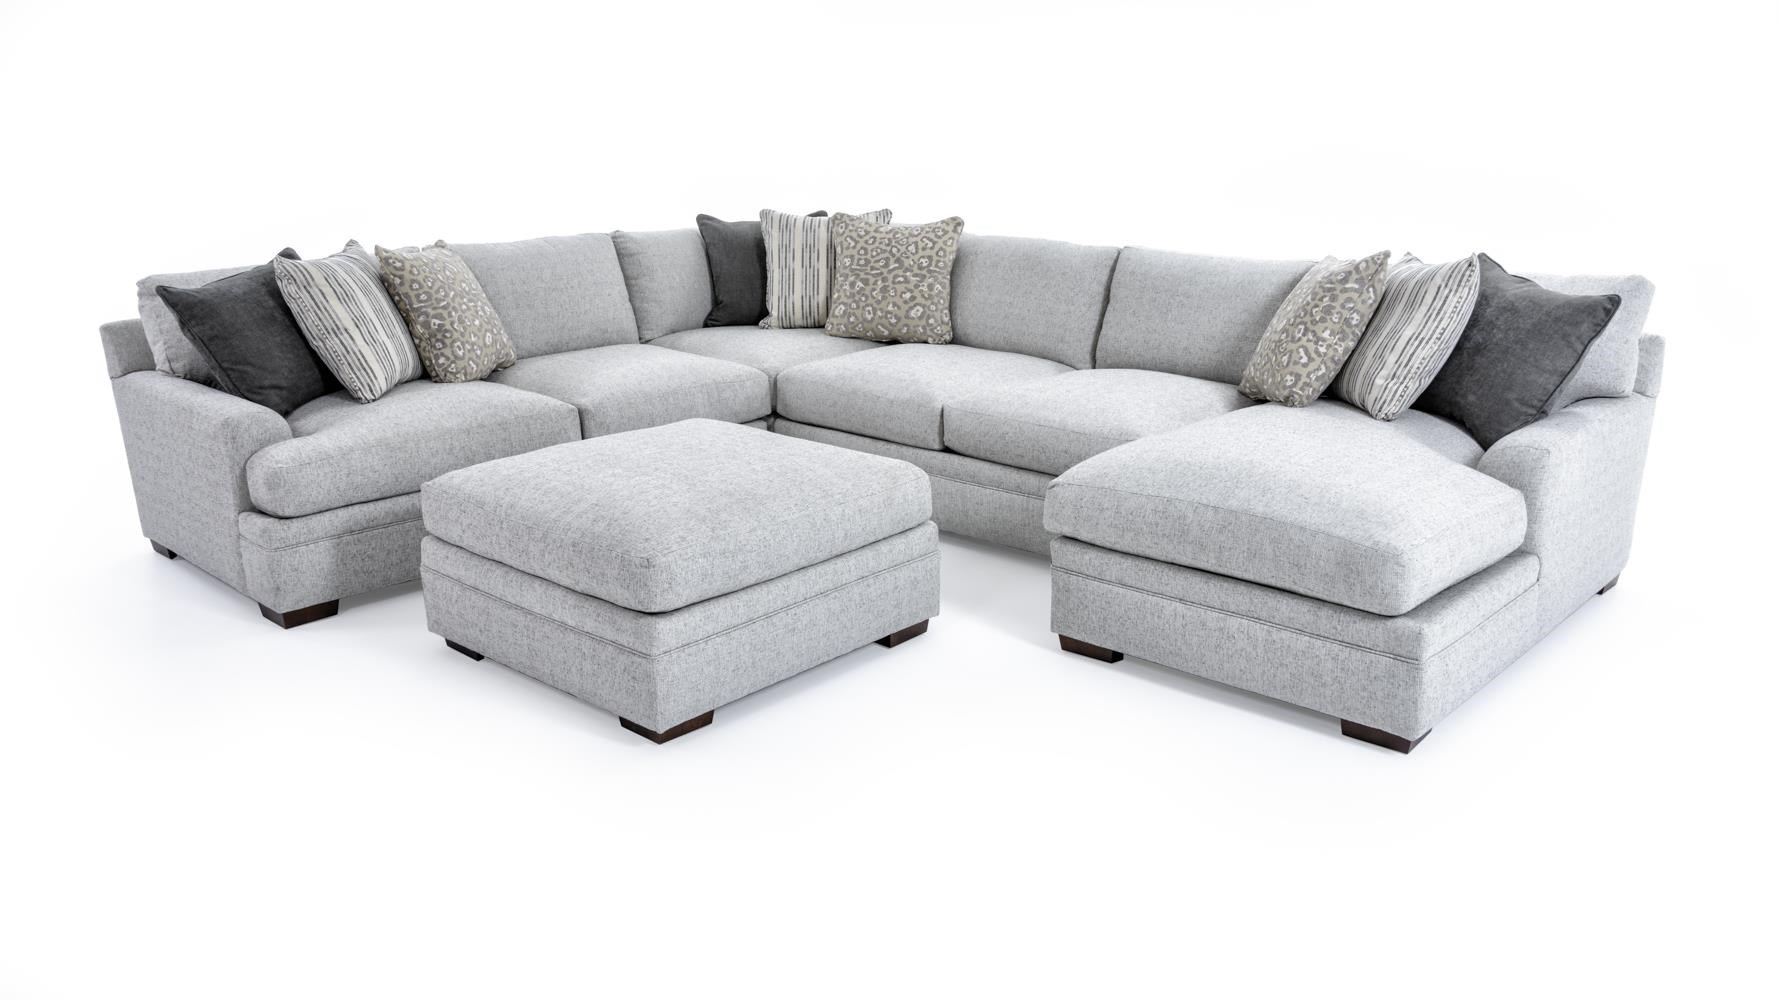 Aria Designs Vance 6033 Sect Ott Casual Five Piece Sectional ...